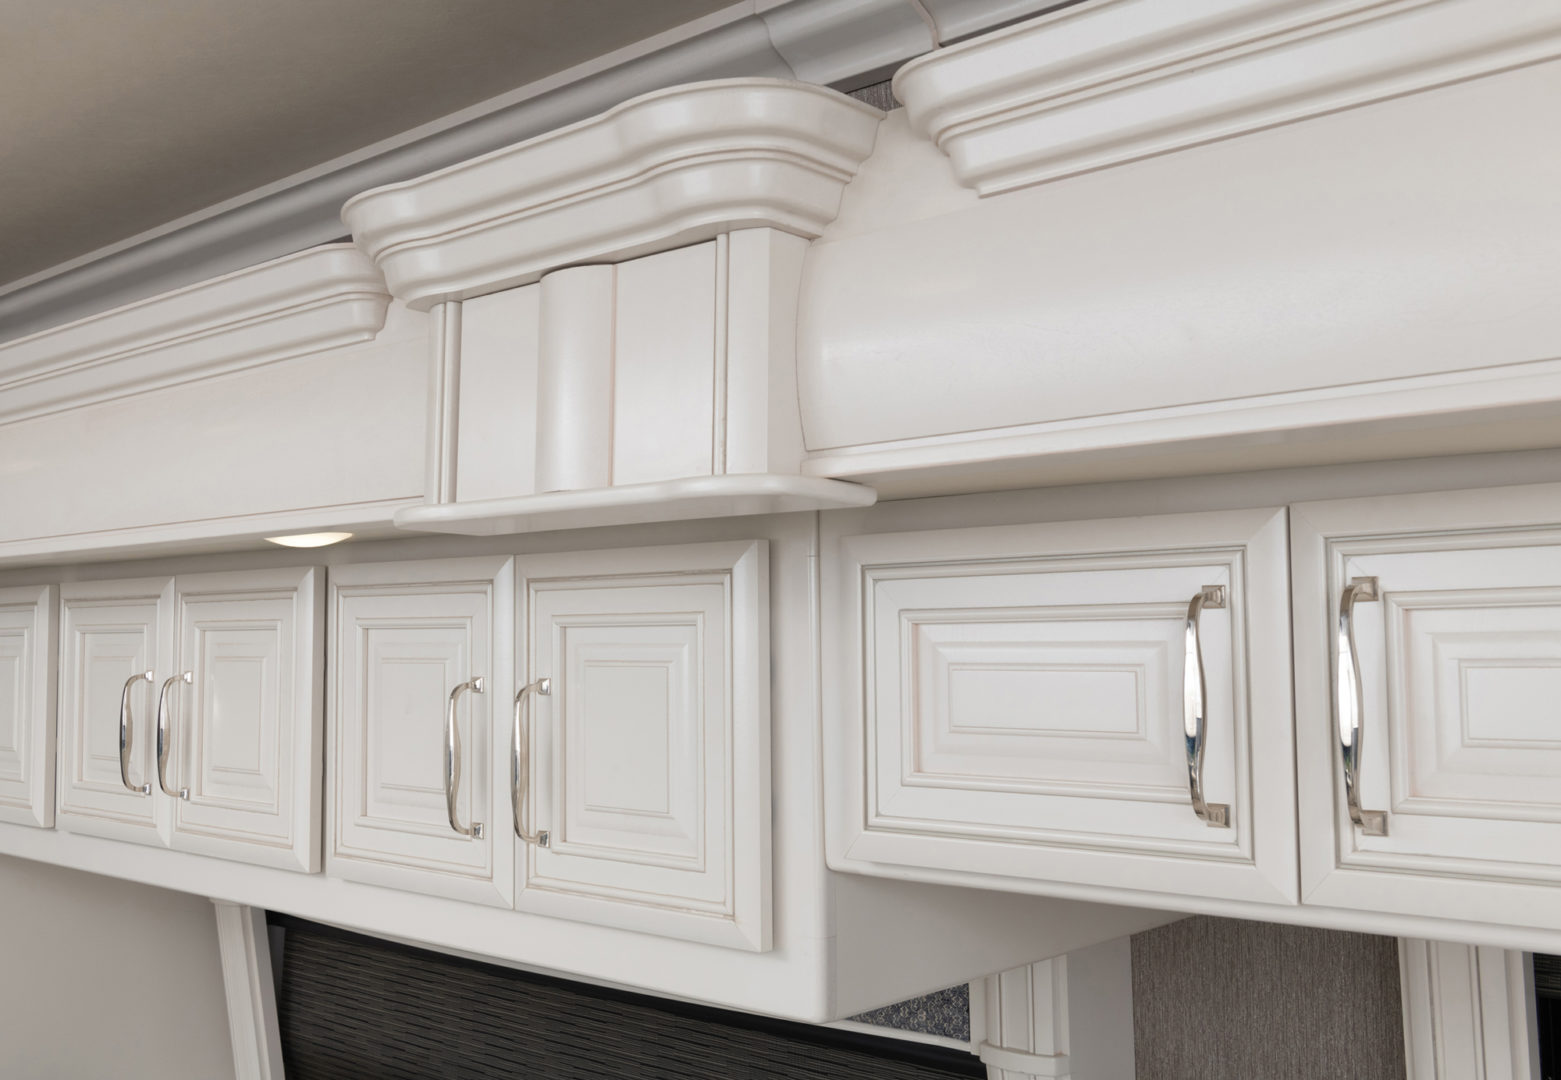 Edgecomb cabinetry 45 K Dream4691